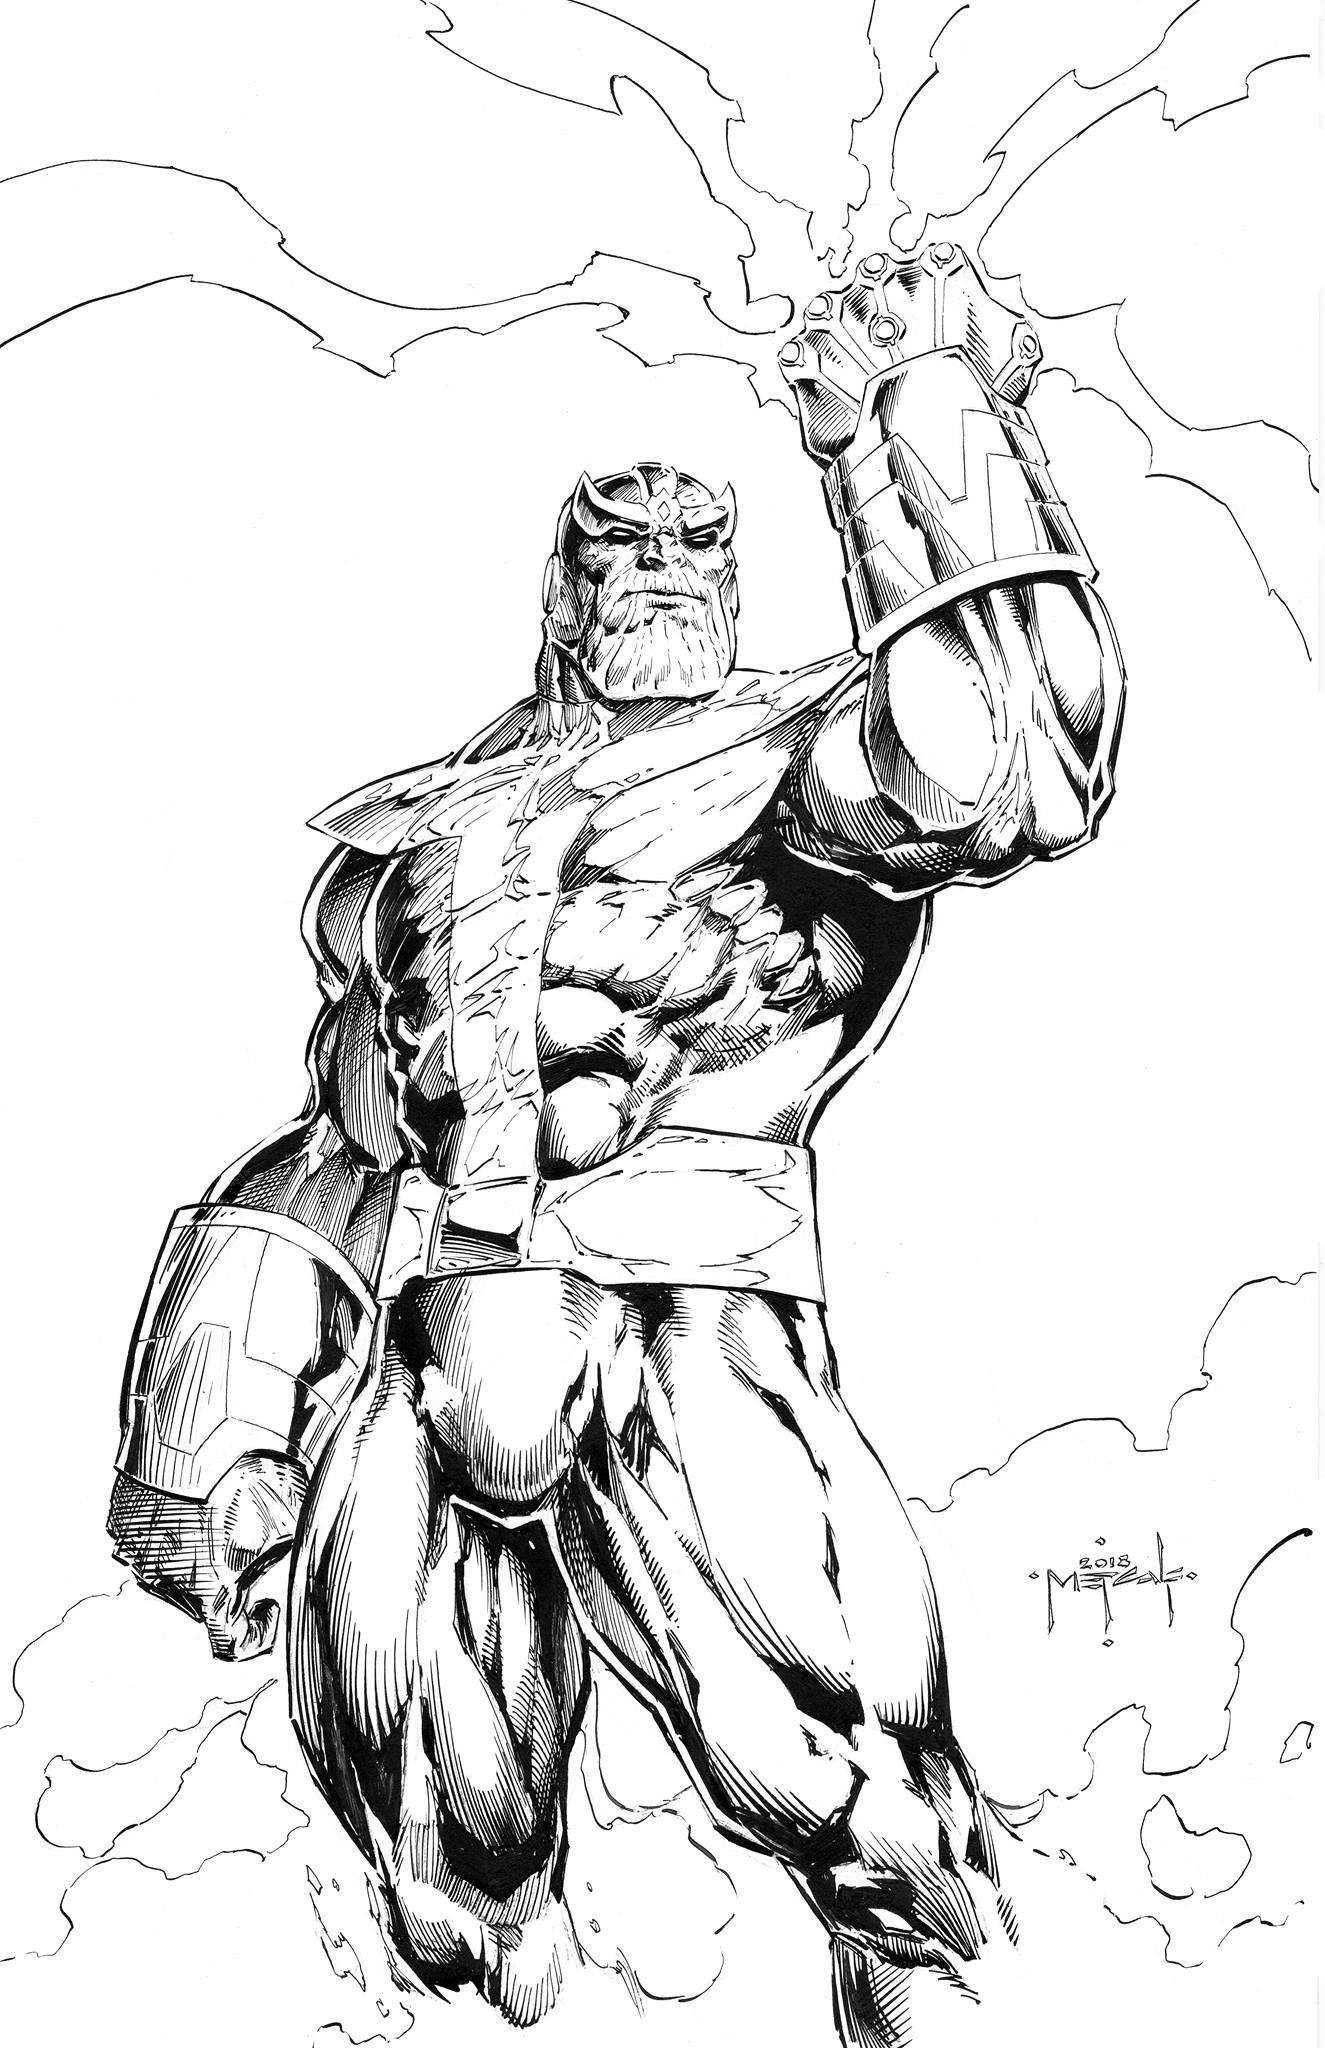 avengers endgame thanos coloring pages thanos by jason metcalf jasonmetcalf thanos dione thanos coloring pages endgame avengers